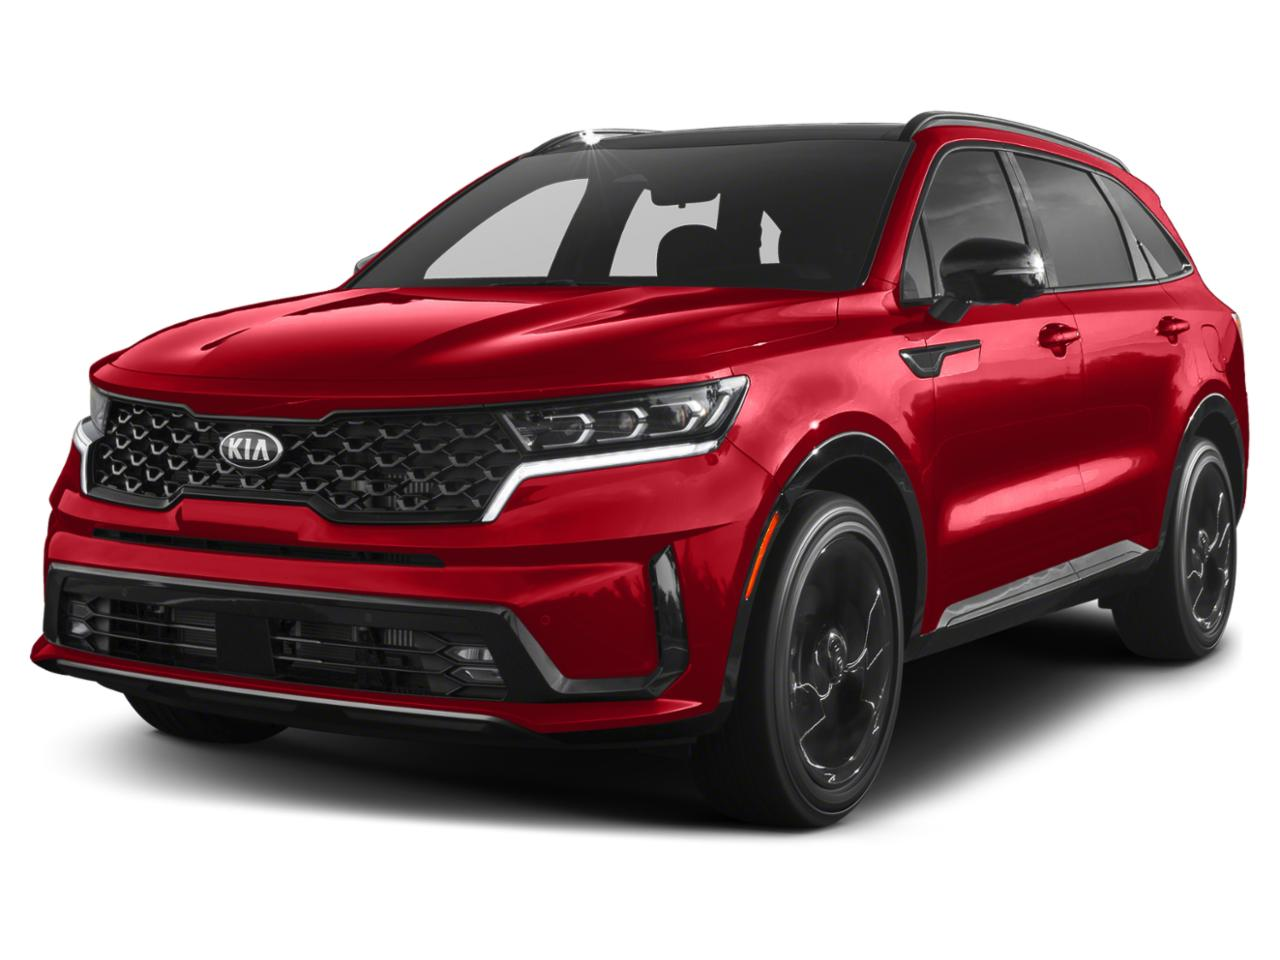 2021 Kia Sorento Vehicle Photo in Oshkosh, WI 54904